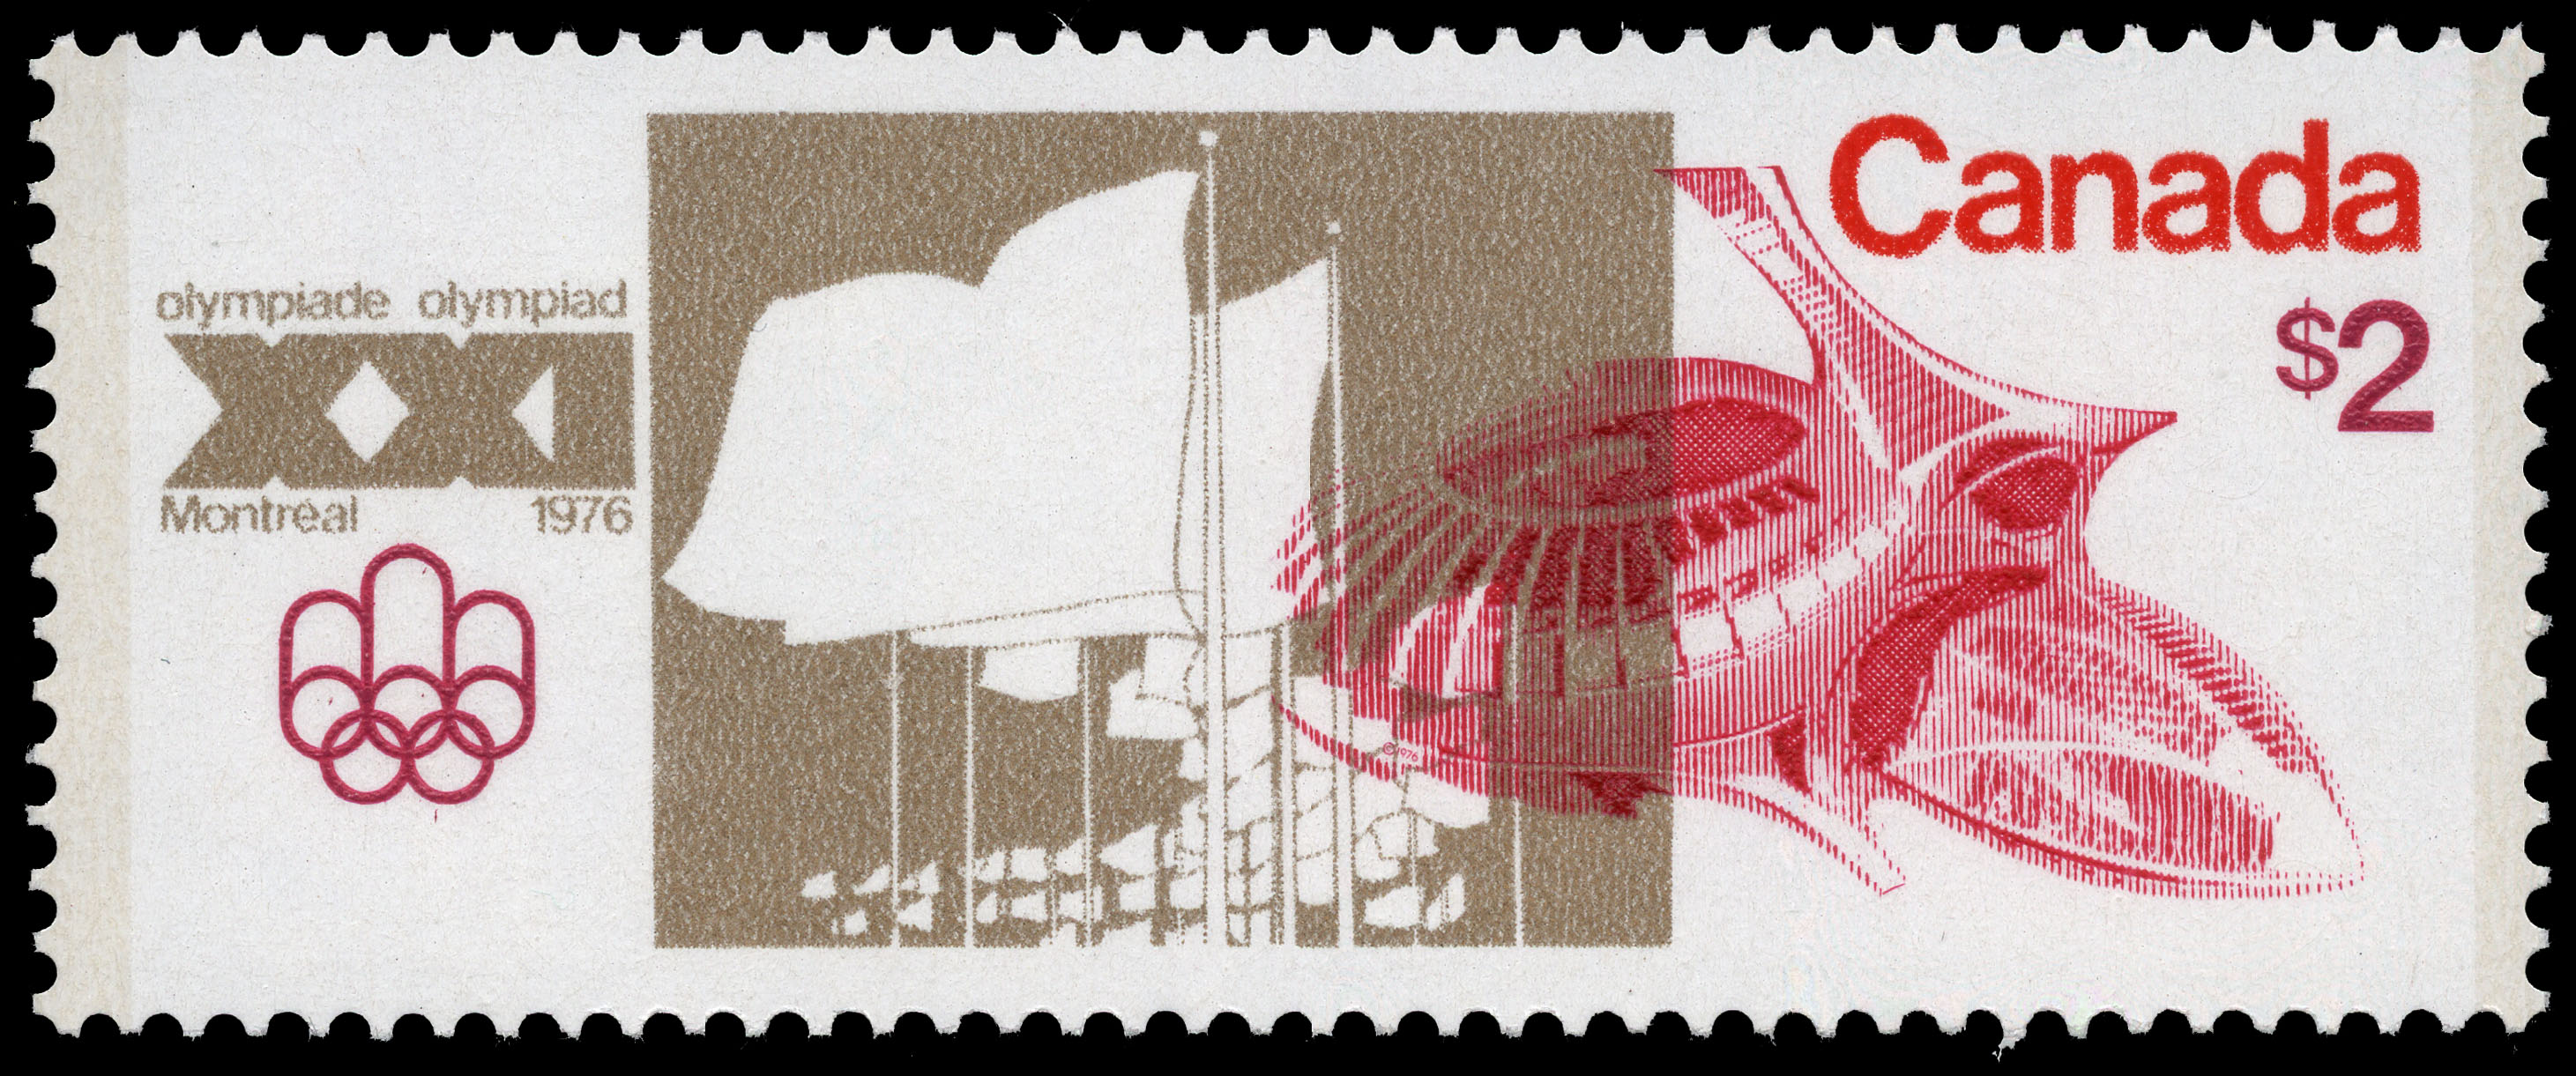 Olympic Stadium and Velodrome Canada Postage Stamp